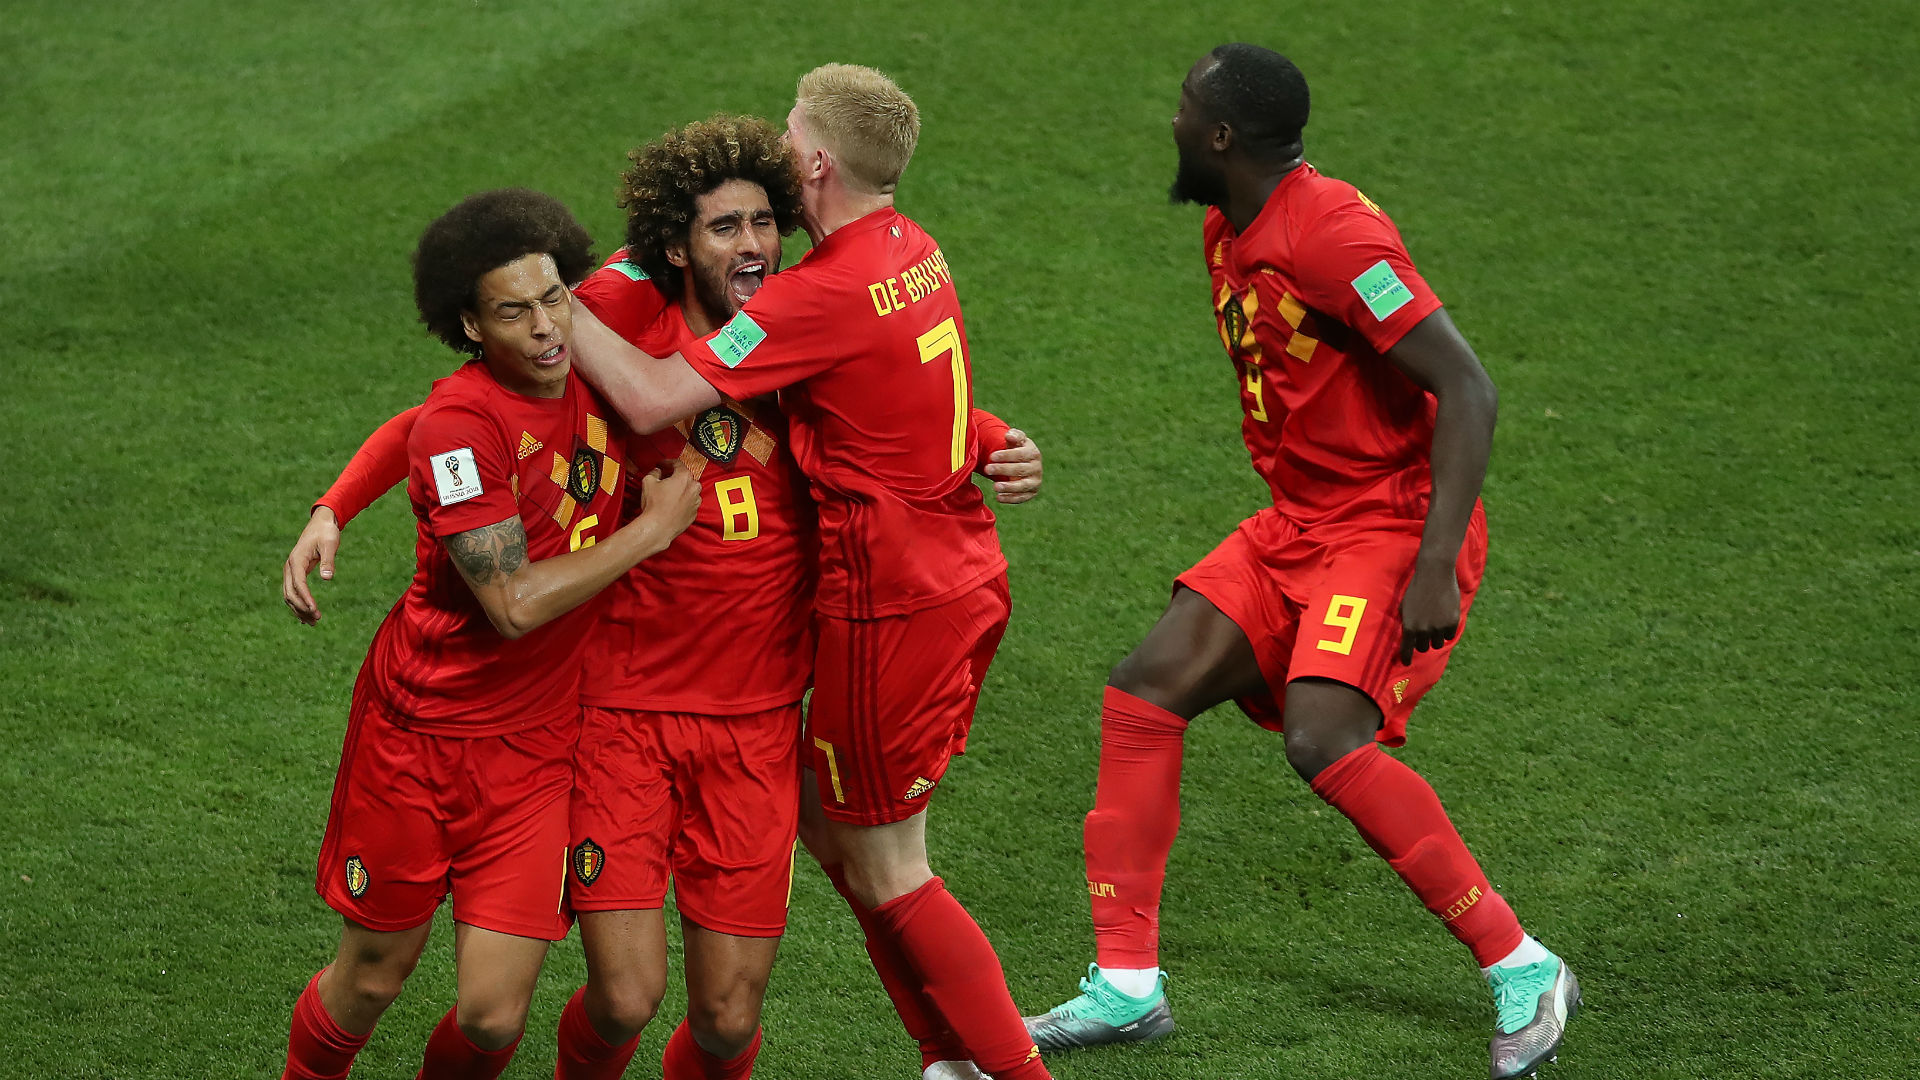 Belgium knock out Brazil with stunning football World Cup win